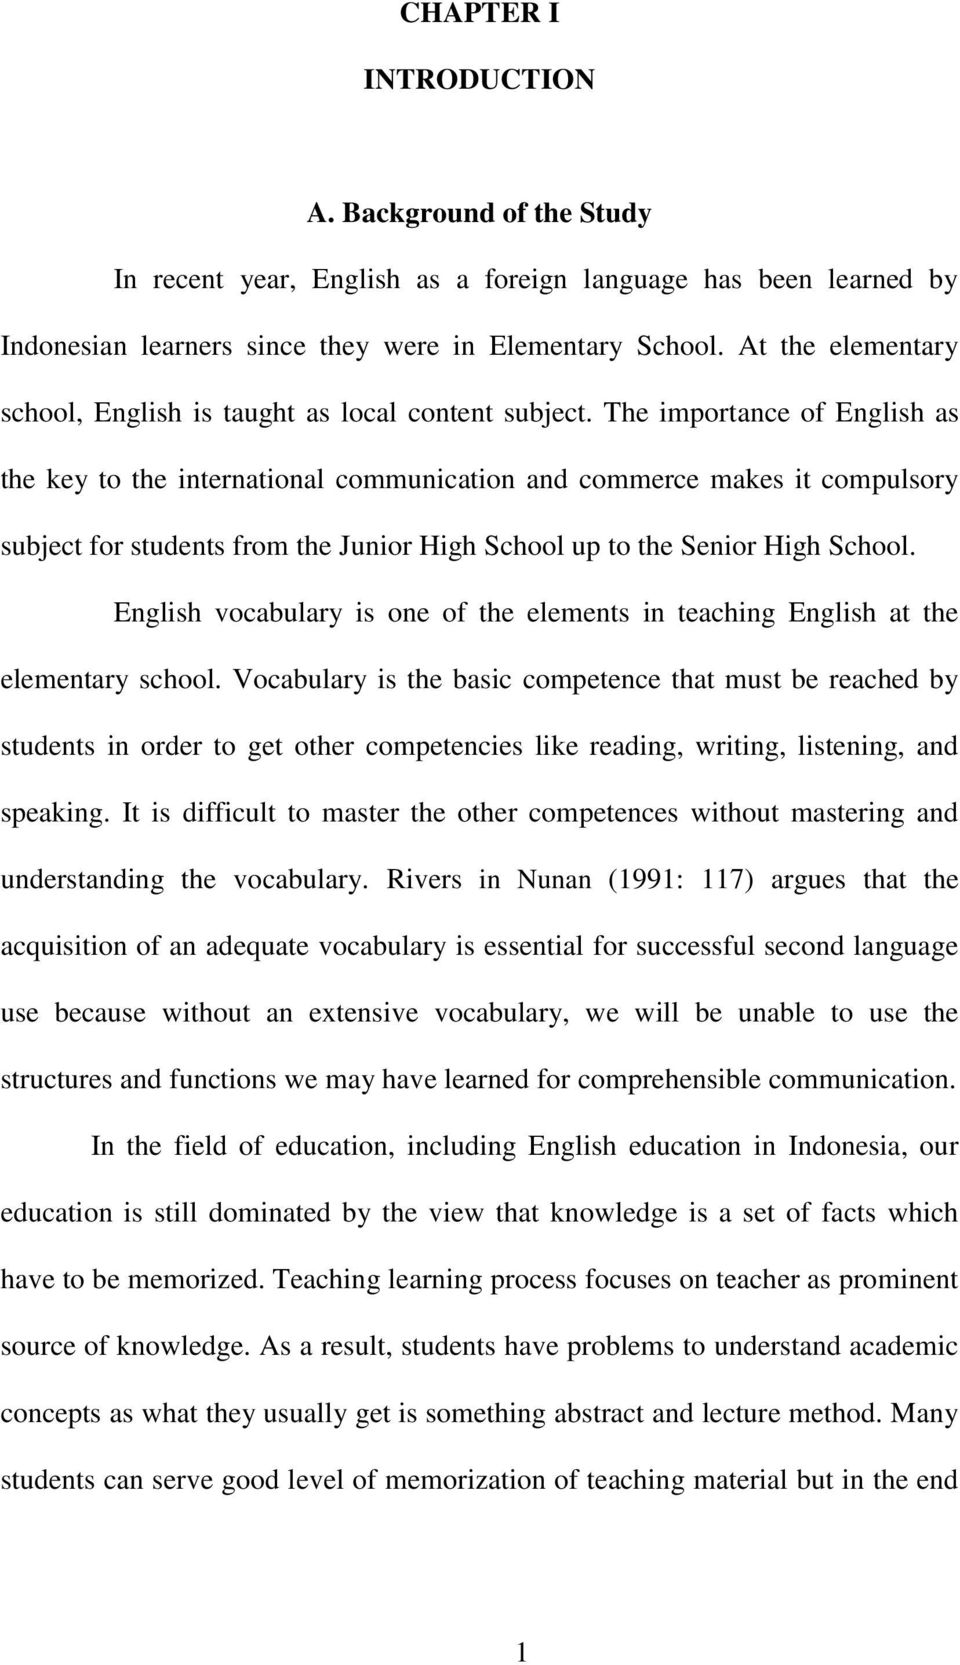 research papers on teaching english as a second language